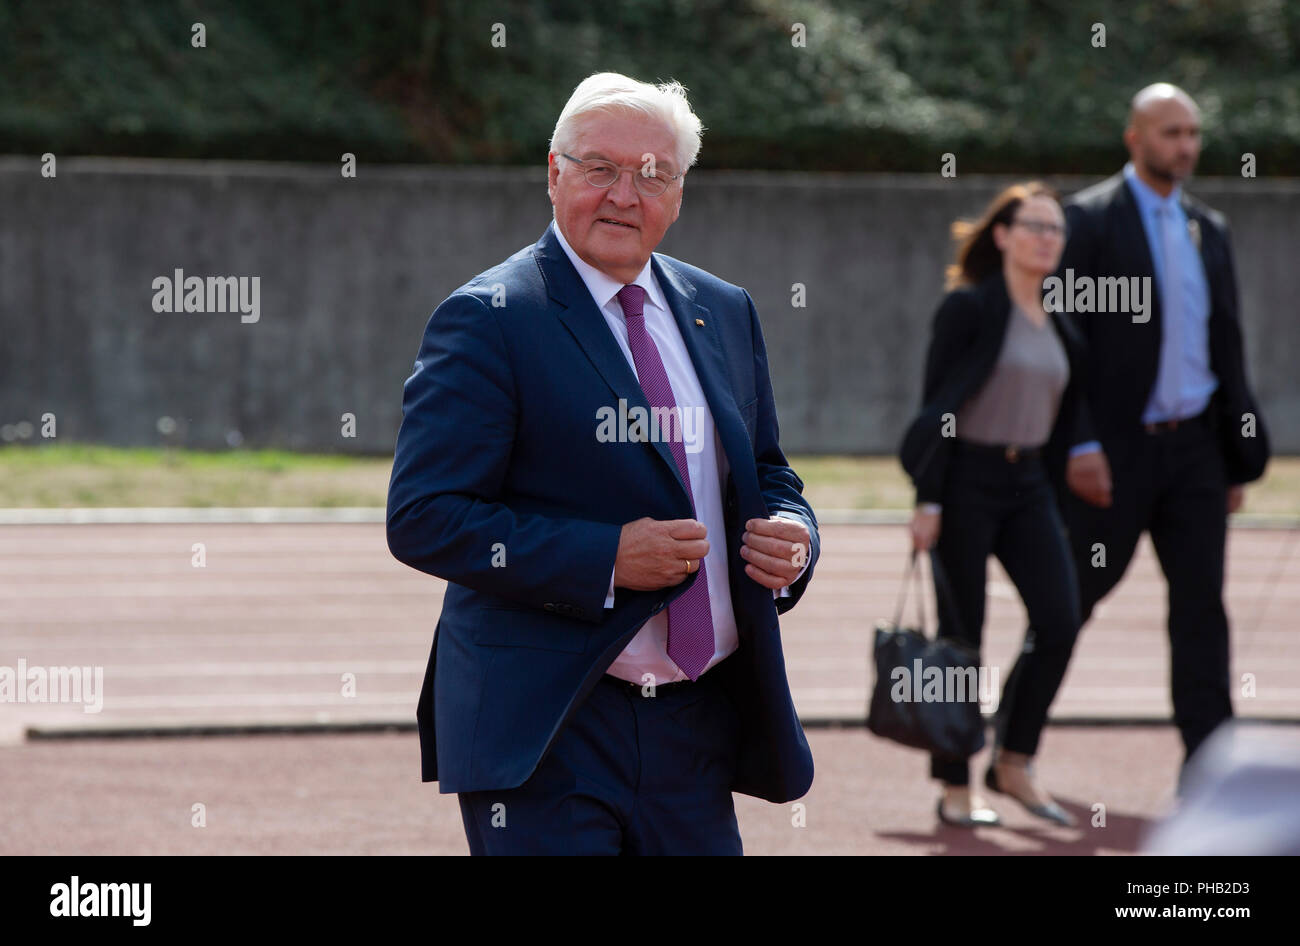 Bonn, Germany, August 31 2018:  Federal President Frank-Walter Steinmeier visits sports club Bonner SC. Steinmeier informed himself about the integration work of the club.             Credit: Juergen Schwarz/Alamy Live News - Stock Image